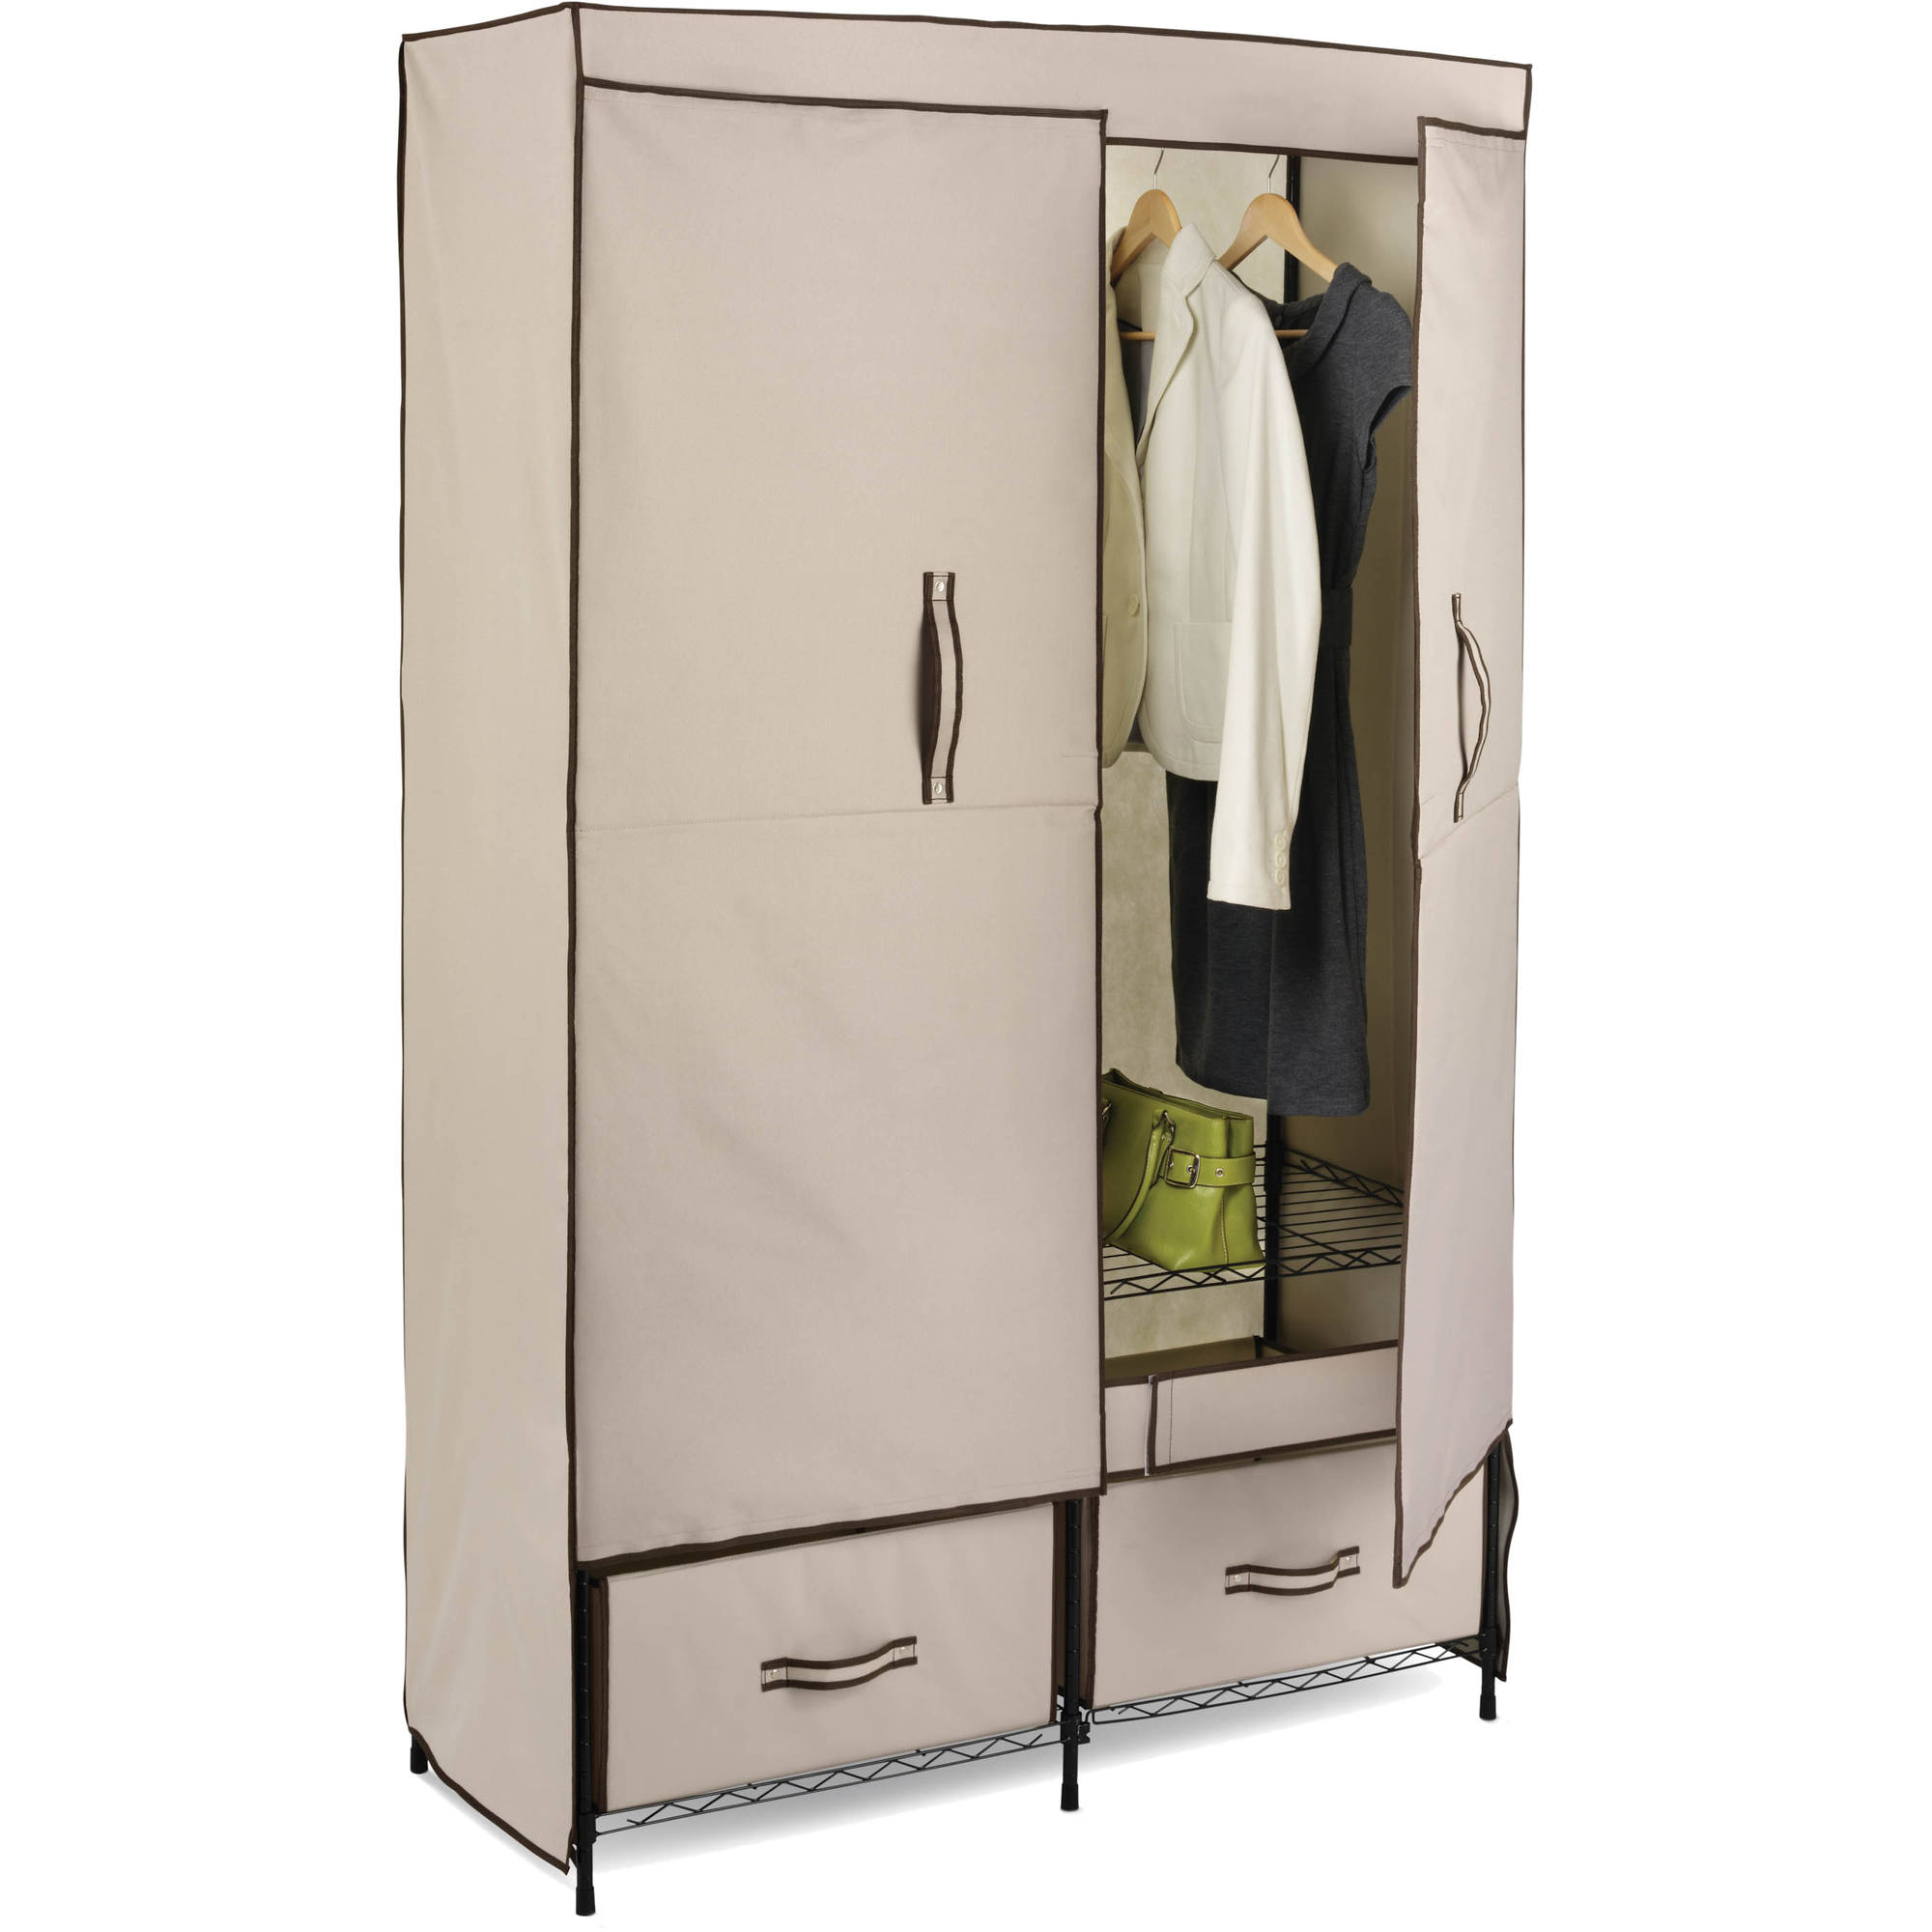 Honey Can Do Double Door Closet Storage With Two Drawers, Beige/Brown